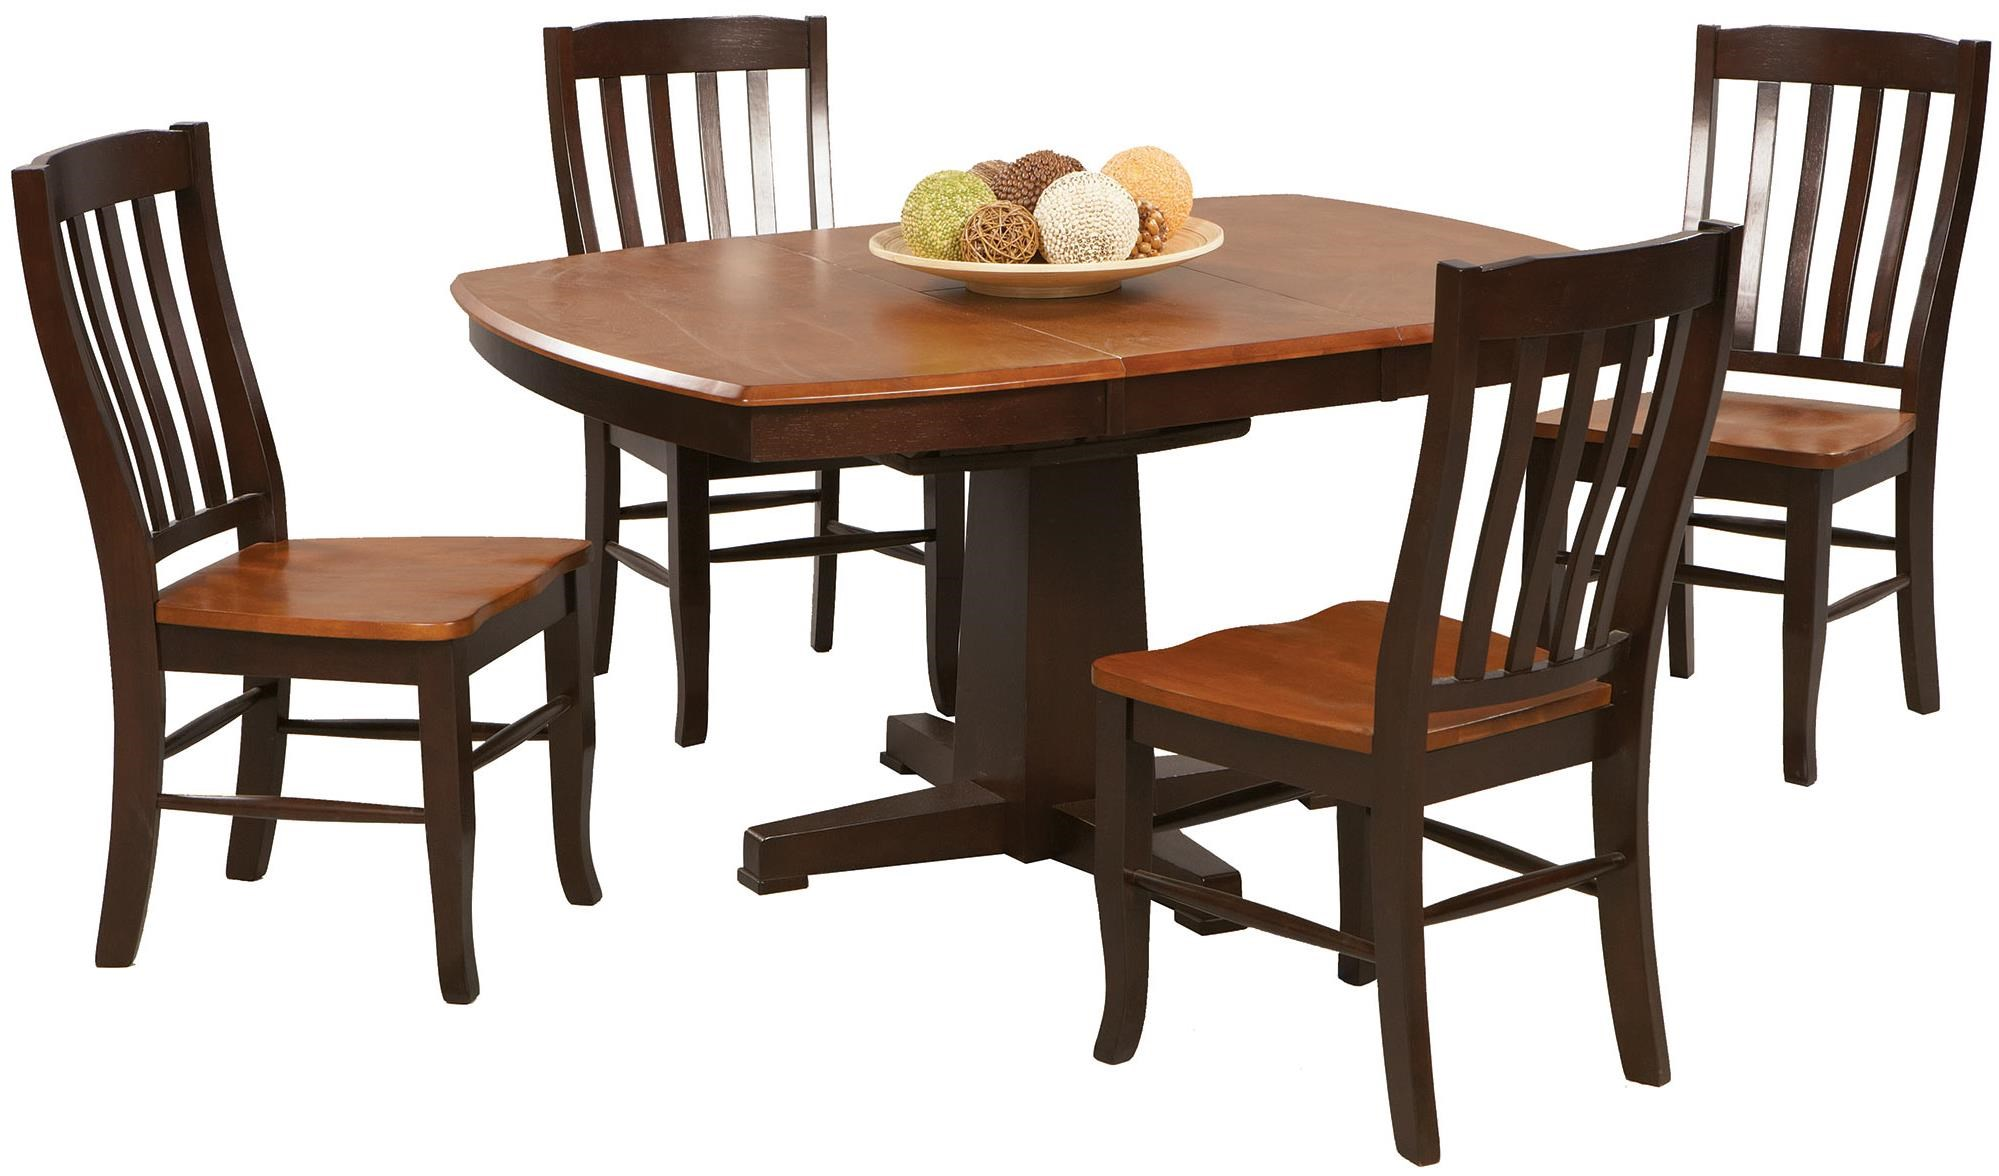 Winners Only Santa Fe   Chestnut/Espresso 5 Piece Dining Set With Slat Back  Chairs